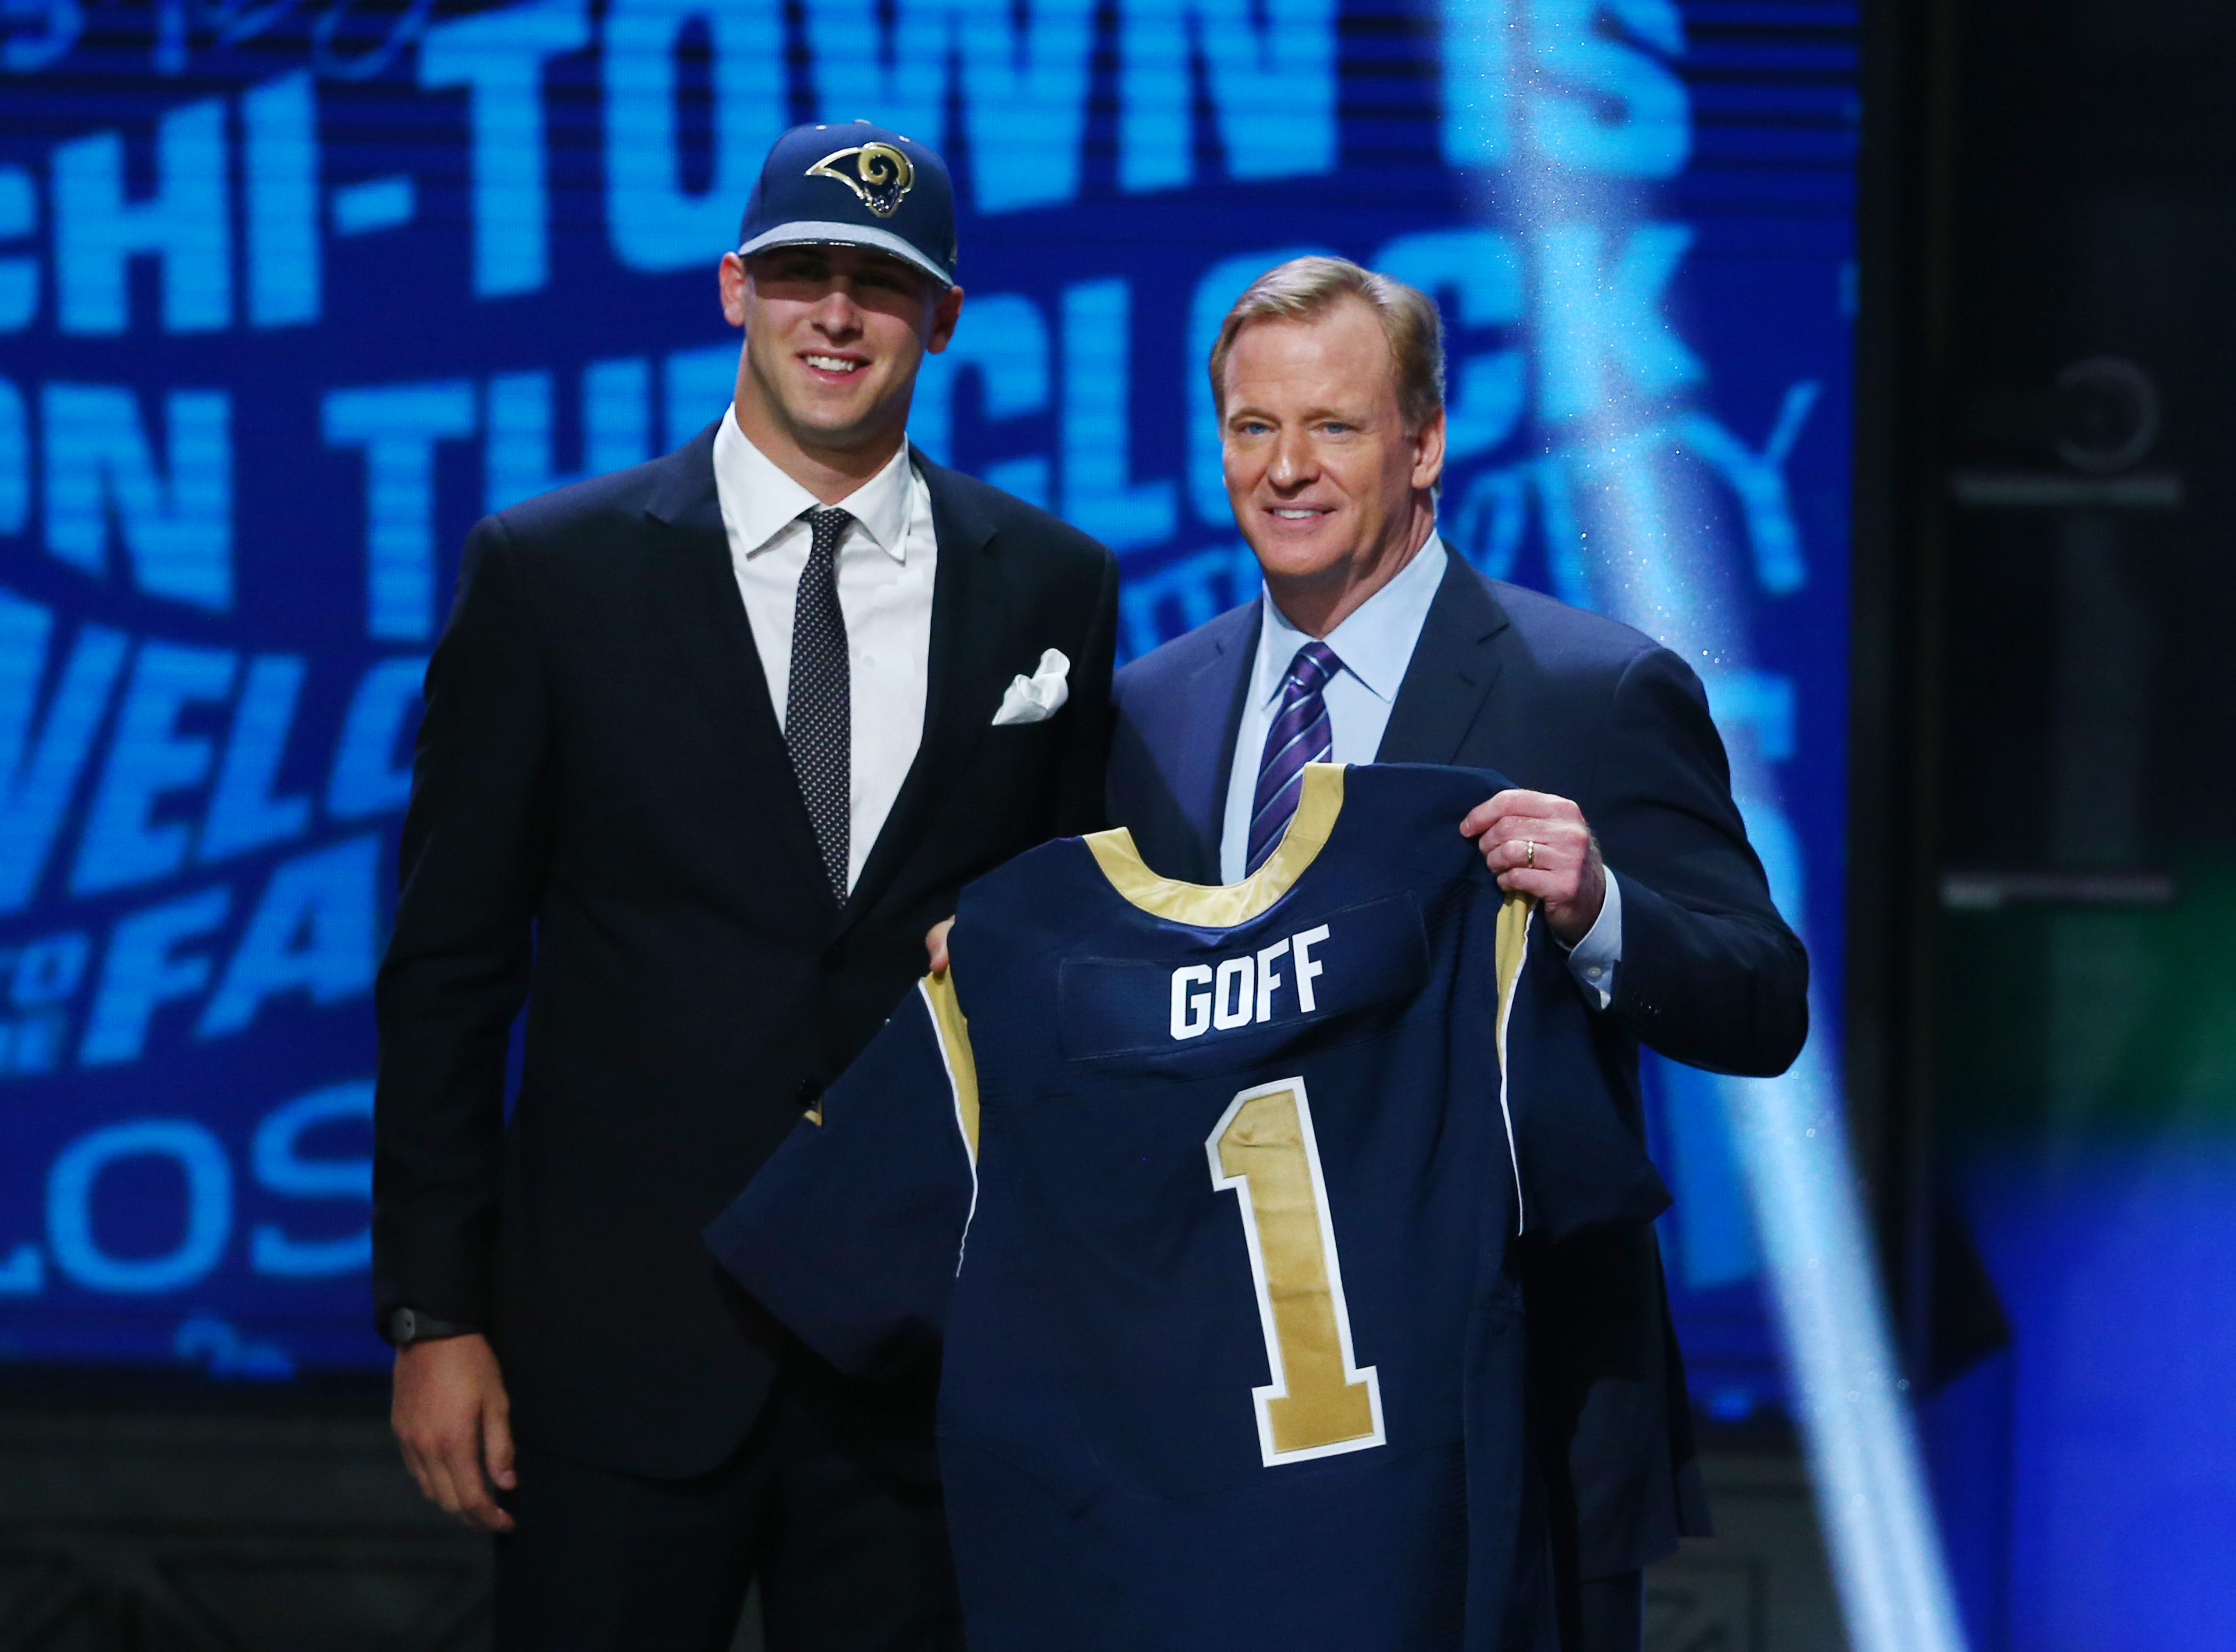 QB Jared Goff poses with NFL Commissioner Roger Goodell after being taken with the #1 overall pick in the 2016 NFL Draft by the Los Angeles Rams, Apr. 28, 2016.